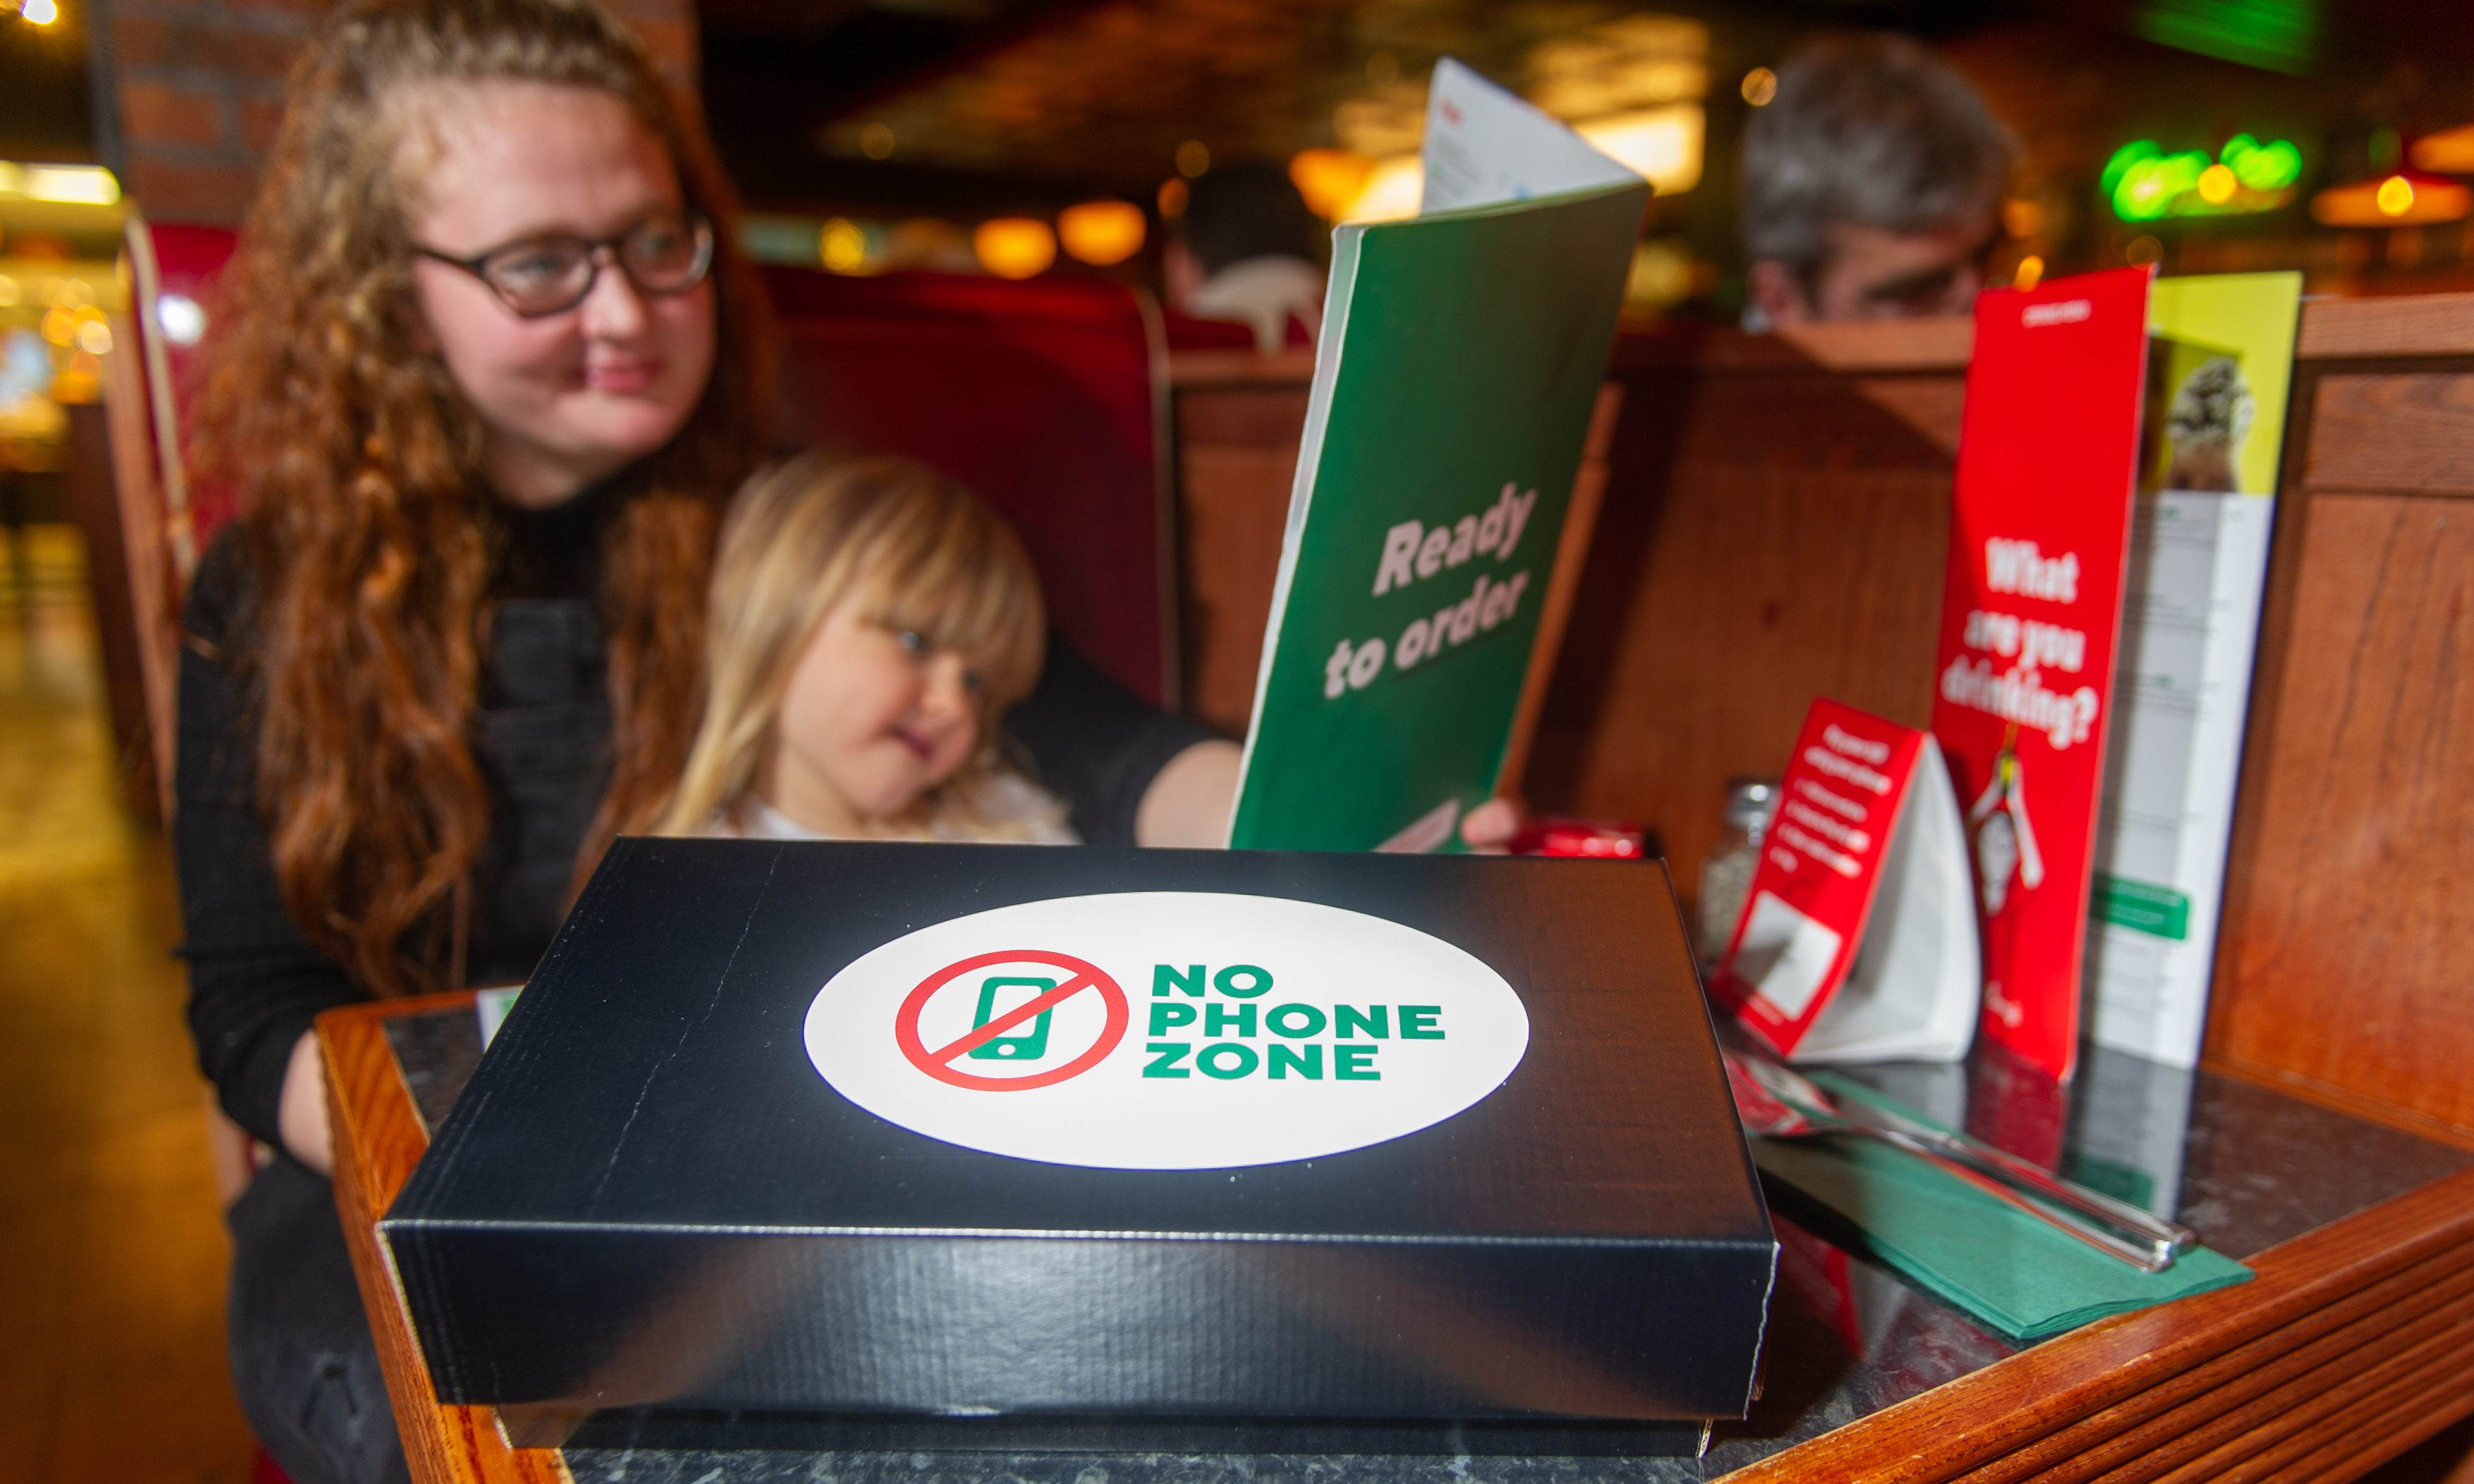 Mum Ashleigh Fergus and daughter Rosie McPherson enjoy a phone free dinner in the Overgate Frankie and Benny's.